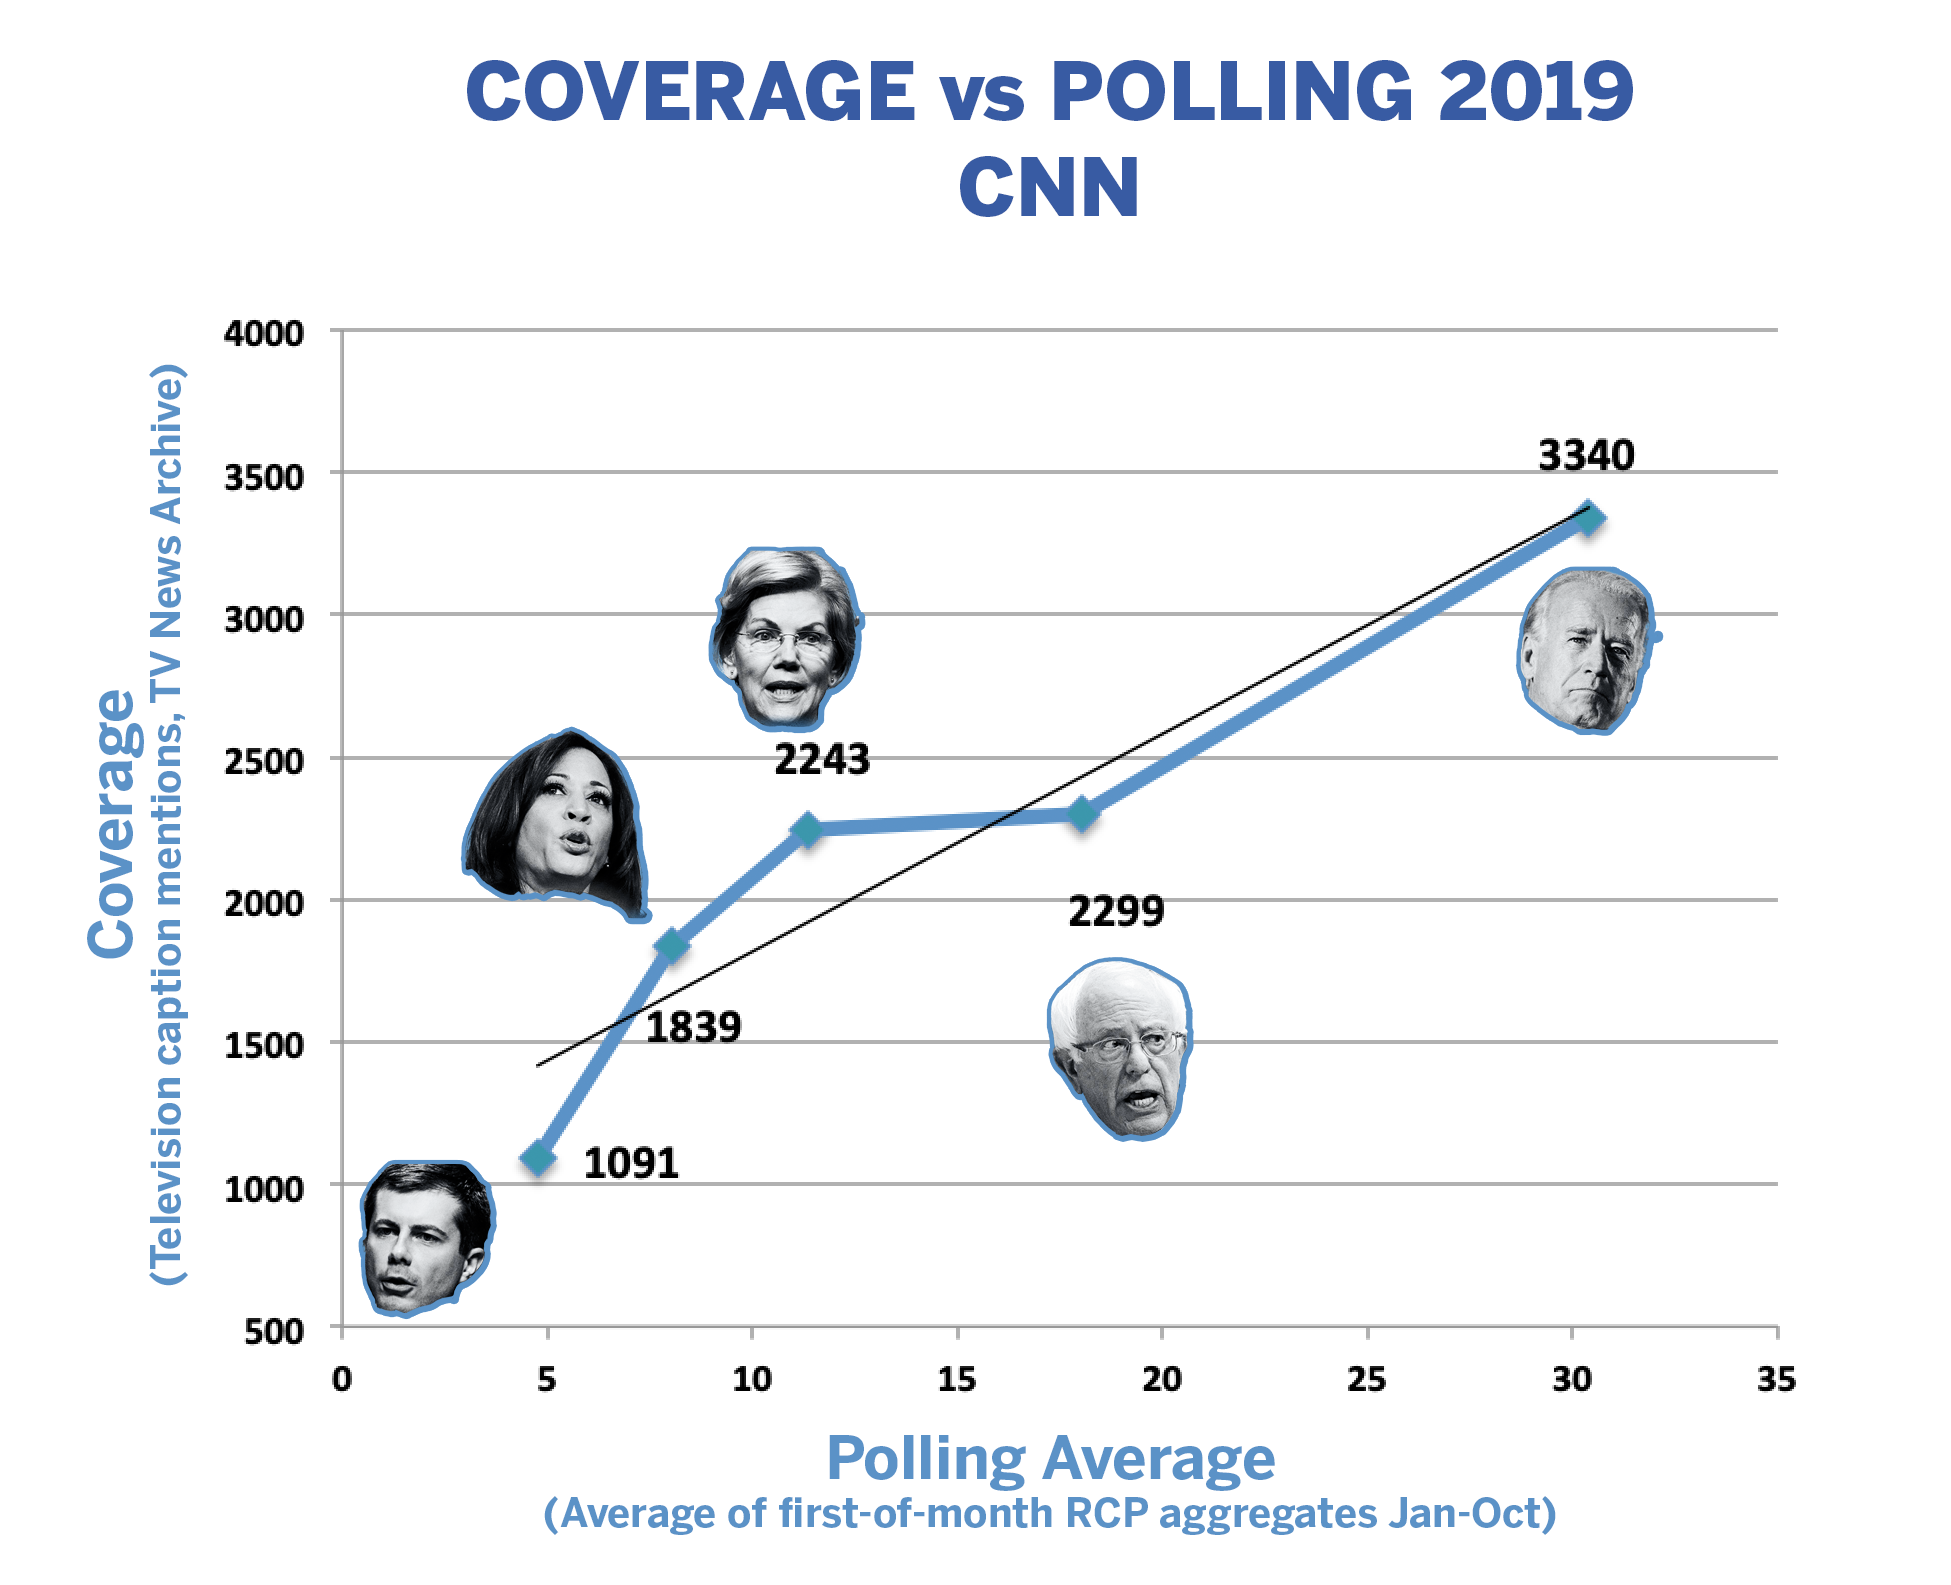 Medium - Bernie is under-covered on TV relative to polling